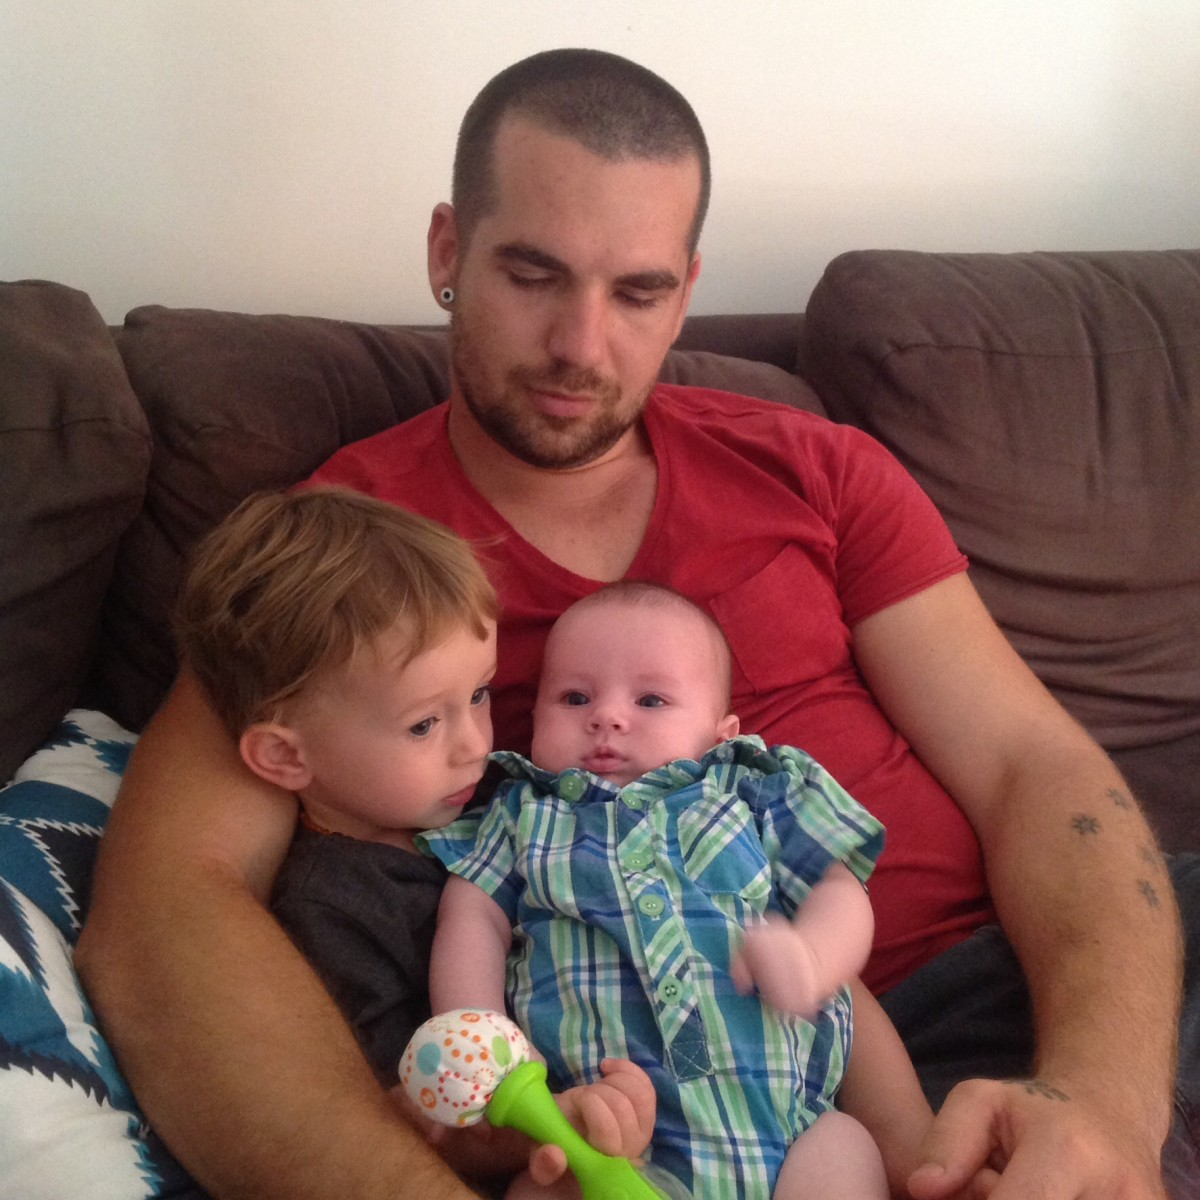 Jared (now a personal fitness trainer) with his two youngest sons Jordan and Dylan